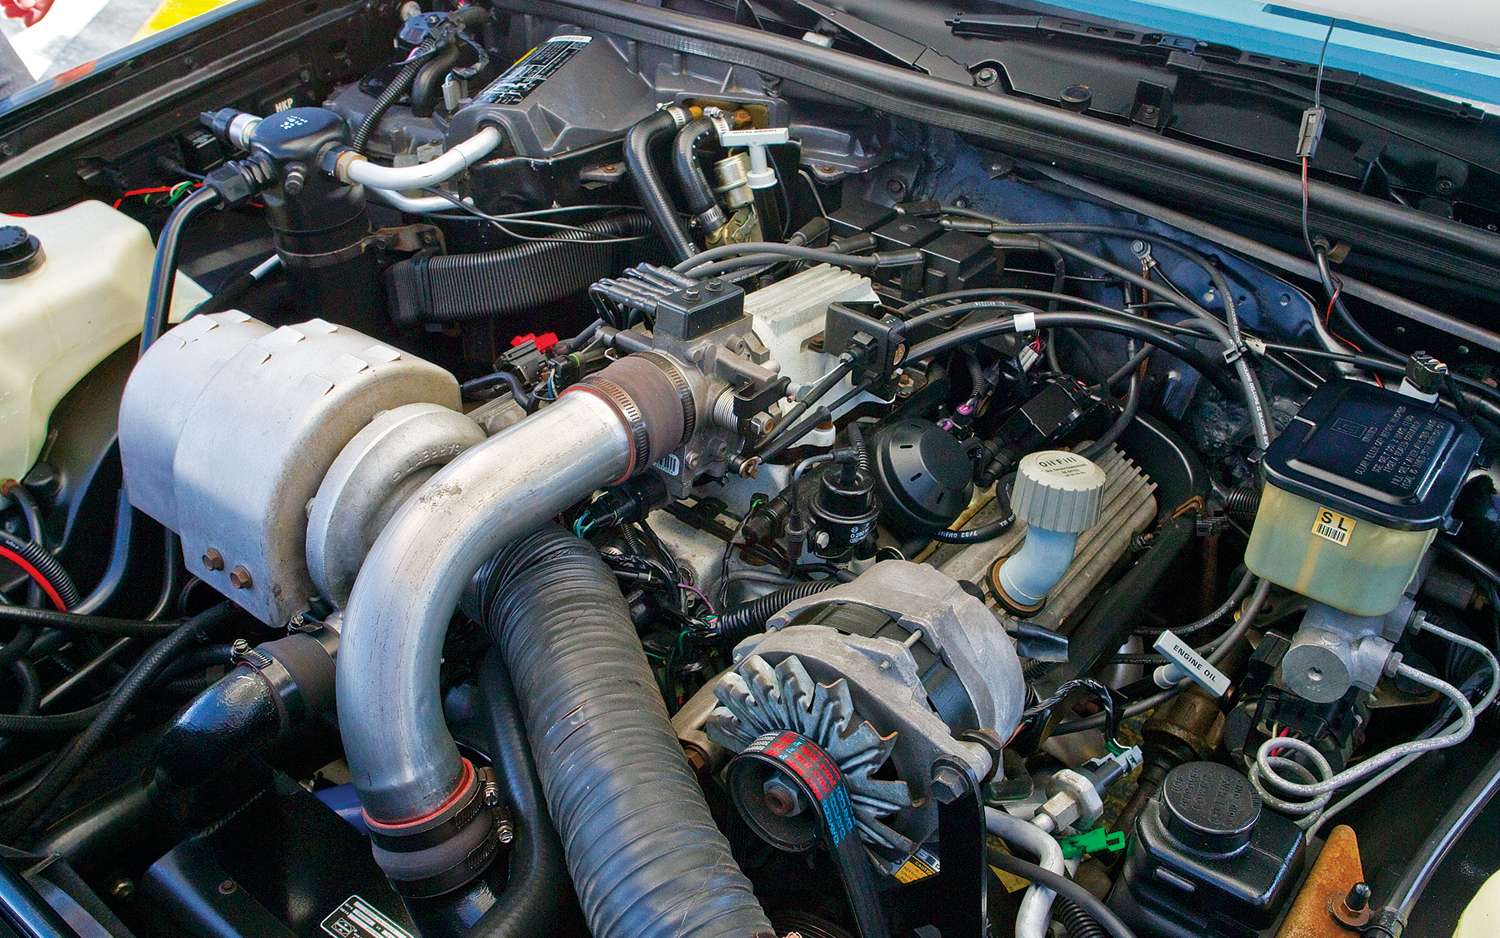 3.8L Turbo V6 producing an estimated 235hp Photo: motortrend